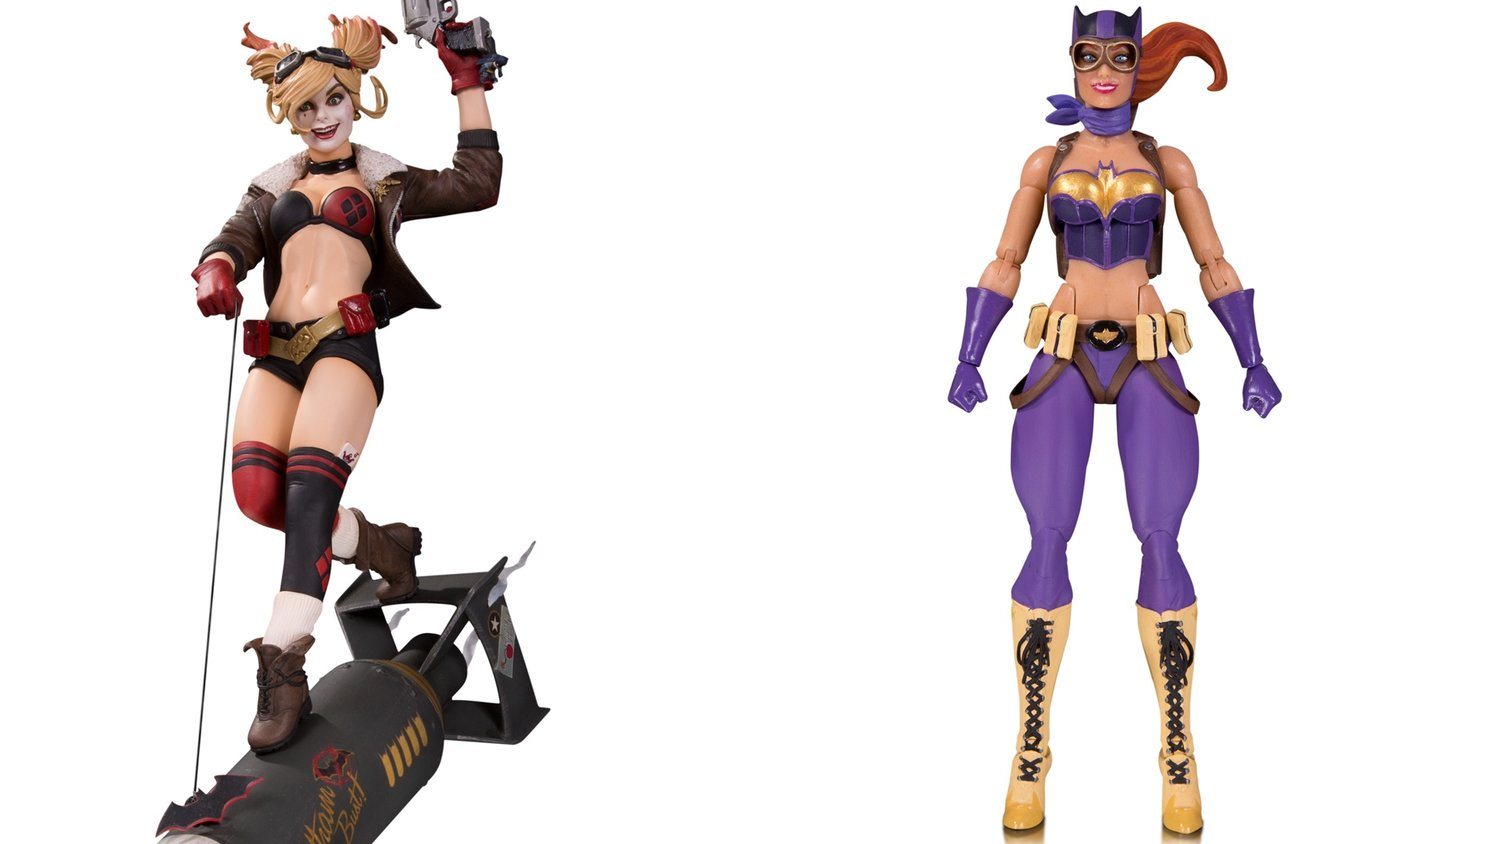 DC Reveals Their Cool New DC Bombshells Action Figure and Statuette Collection